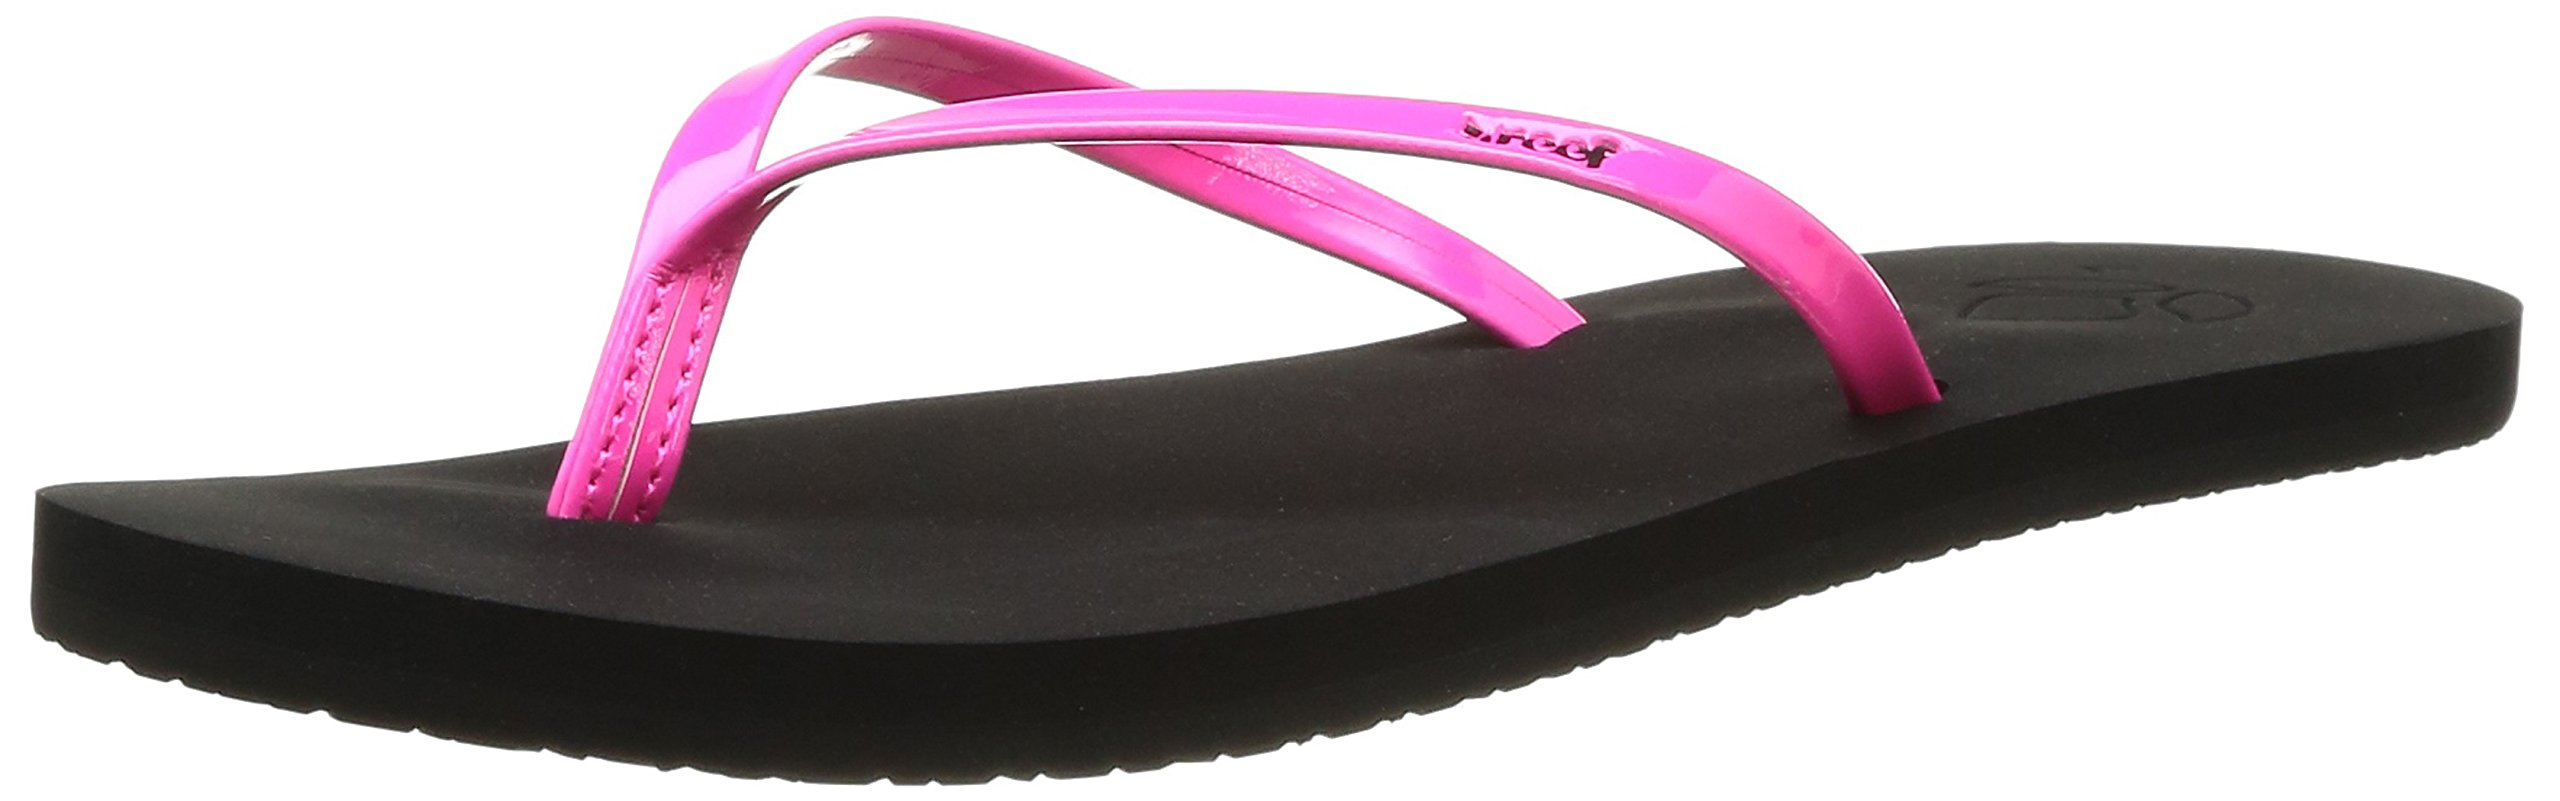 Reef Womens Sandals Bliss | Faux Patent Leather Flip Flops for Women With Soft Cushion Footbed | Waterproof